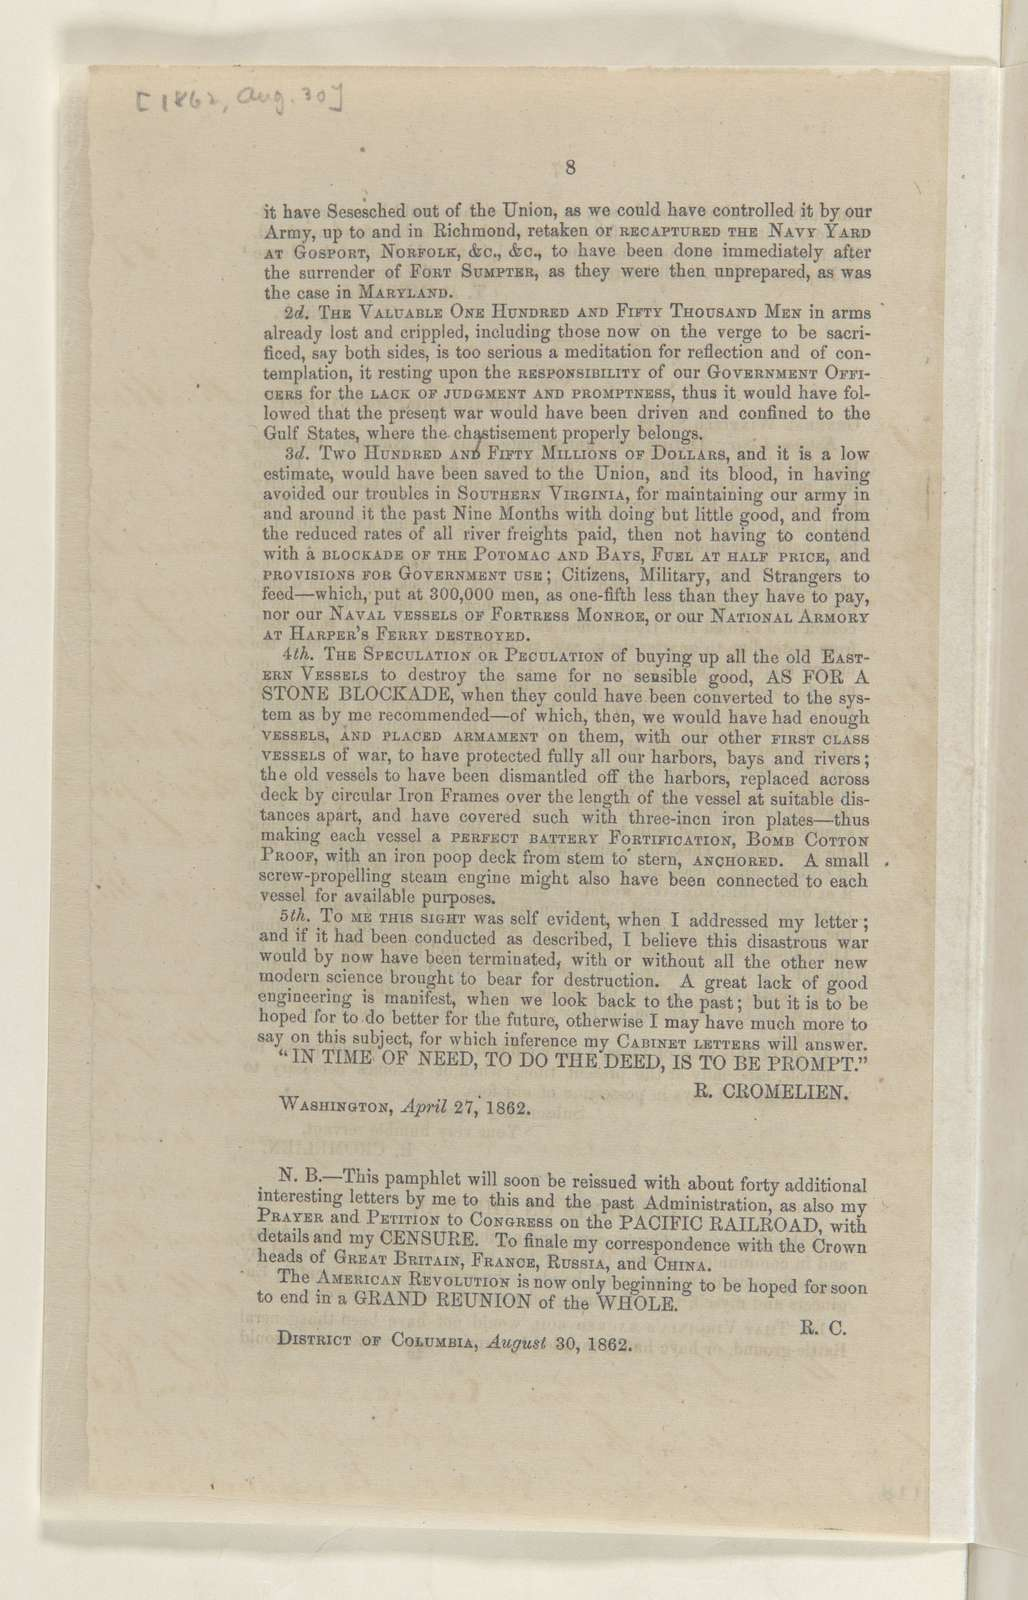 Abraham Lincoln papers: Series 1. General Correspondence. 1833-1916: Rowland Cromelien, Saturday, August 30, 1862 (Pamphlet)